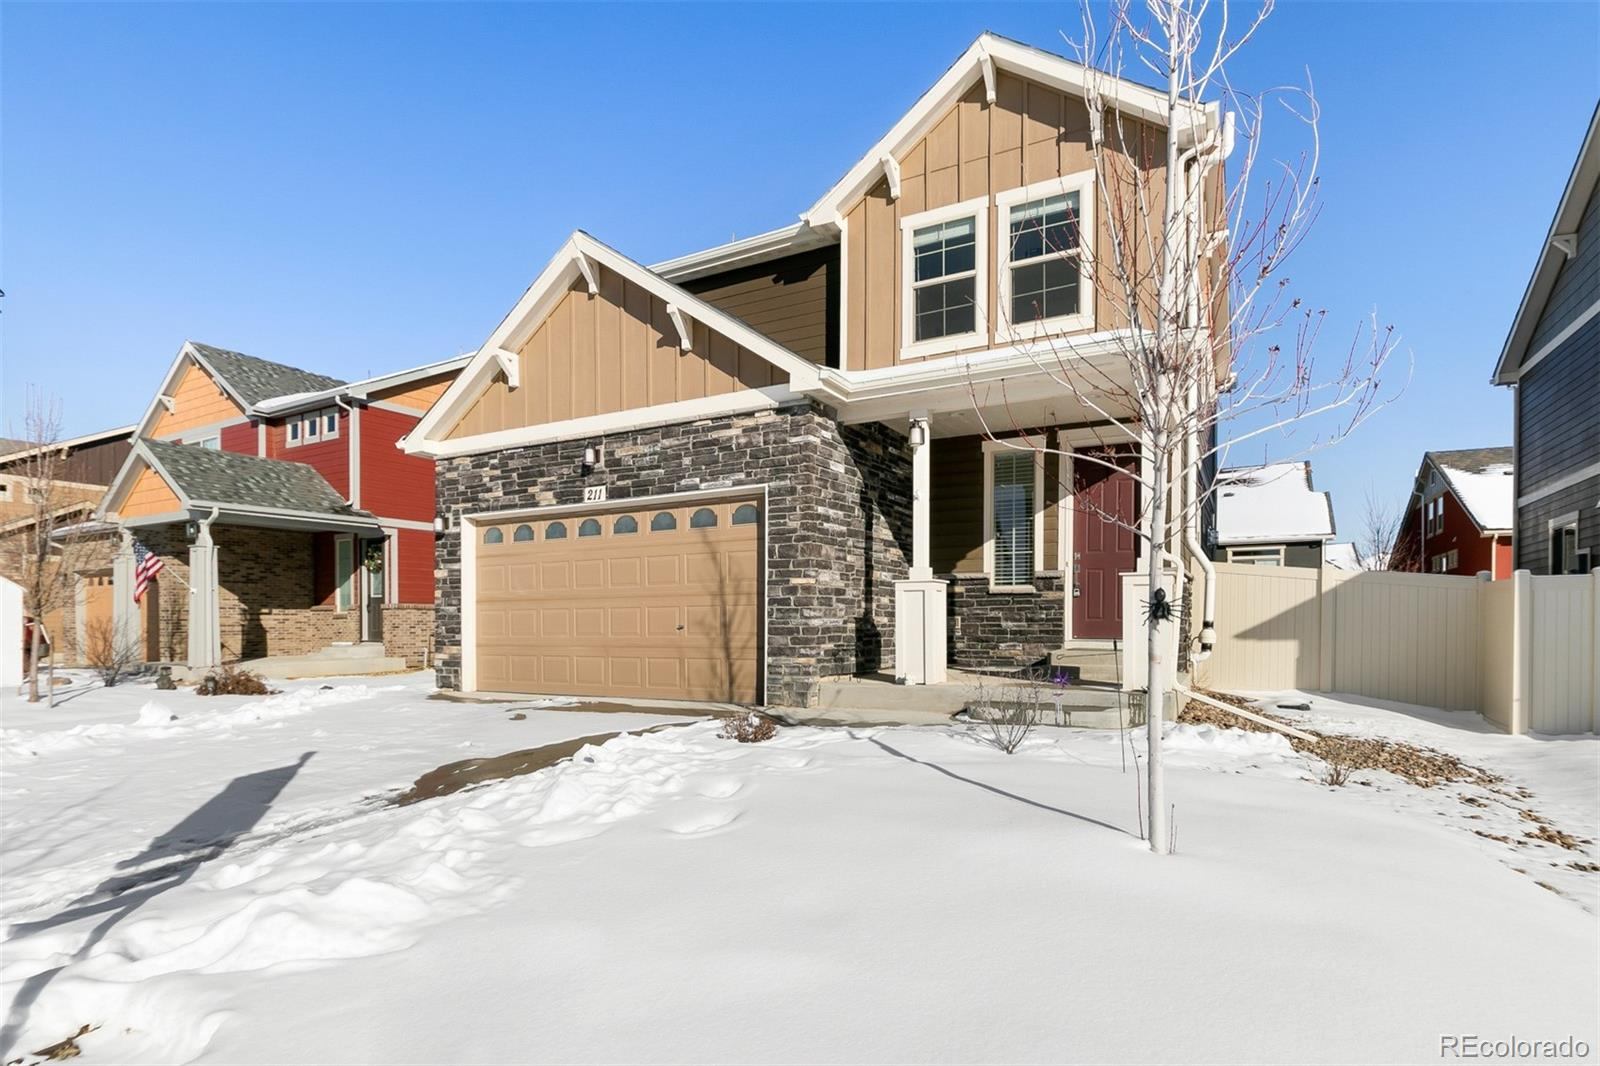 MLS# 6282621 - 4 - 211 Pear Lake Way, Erie, CO 80516